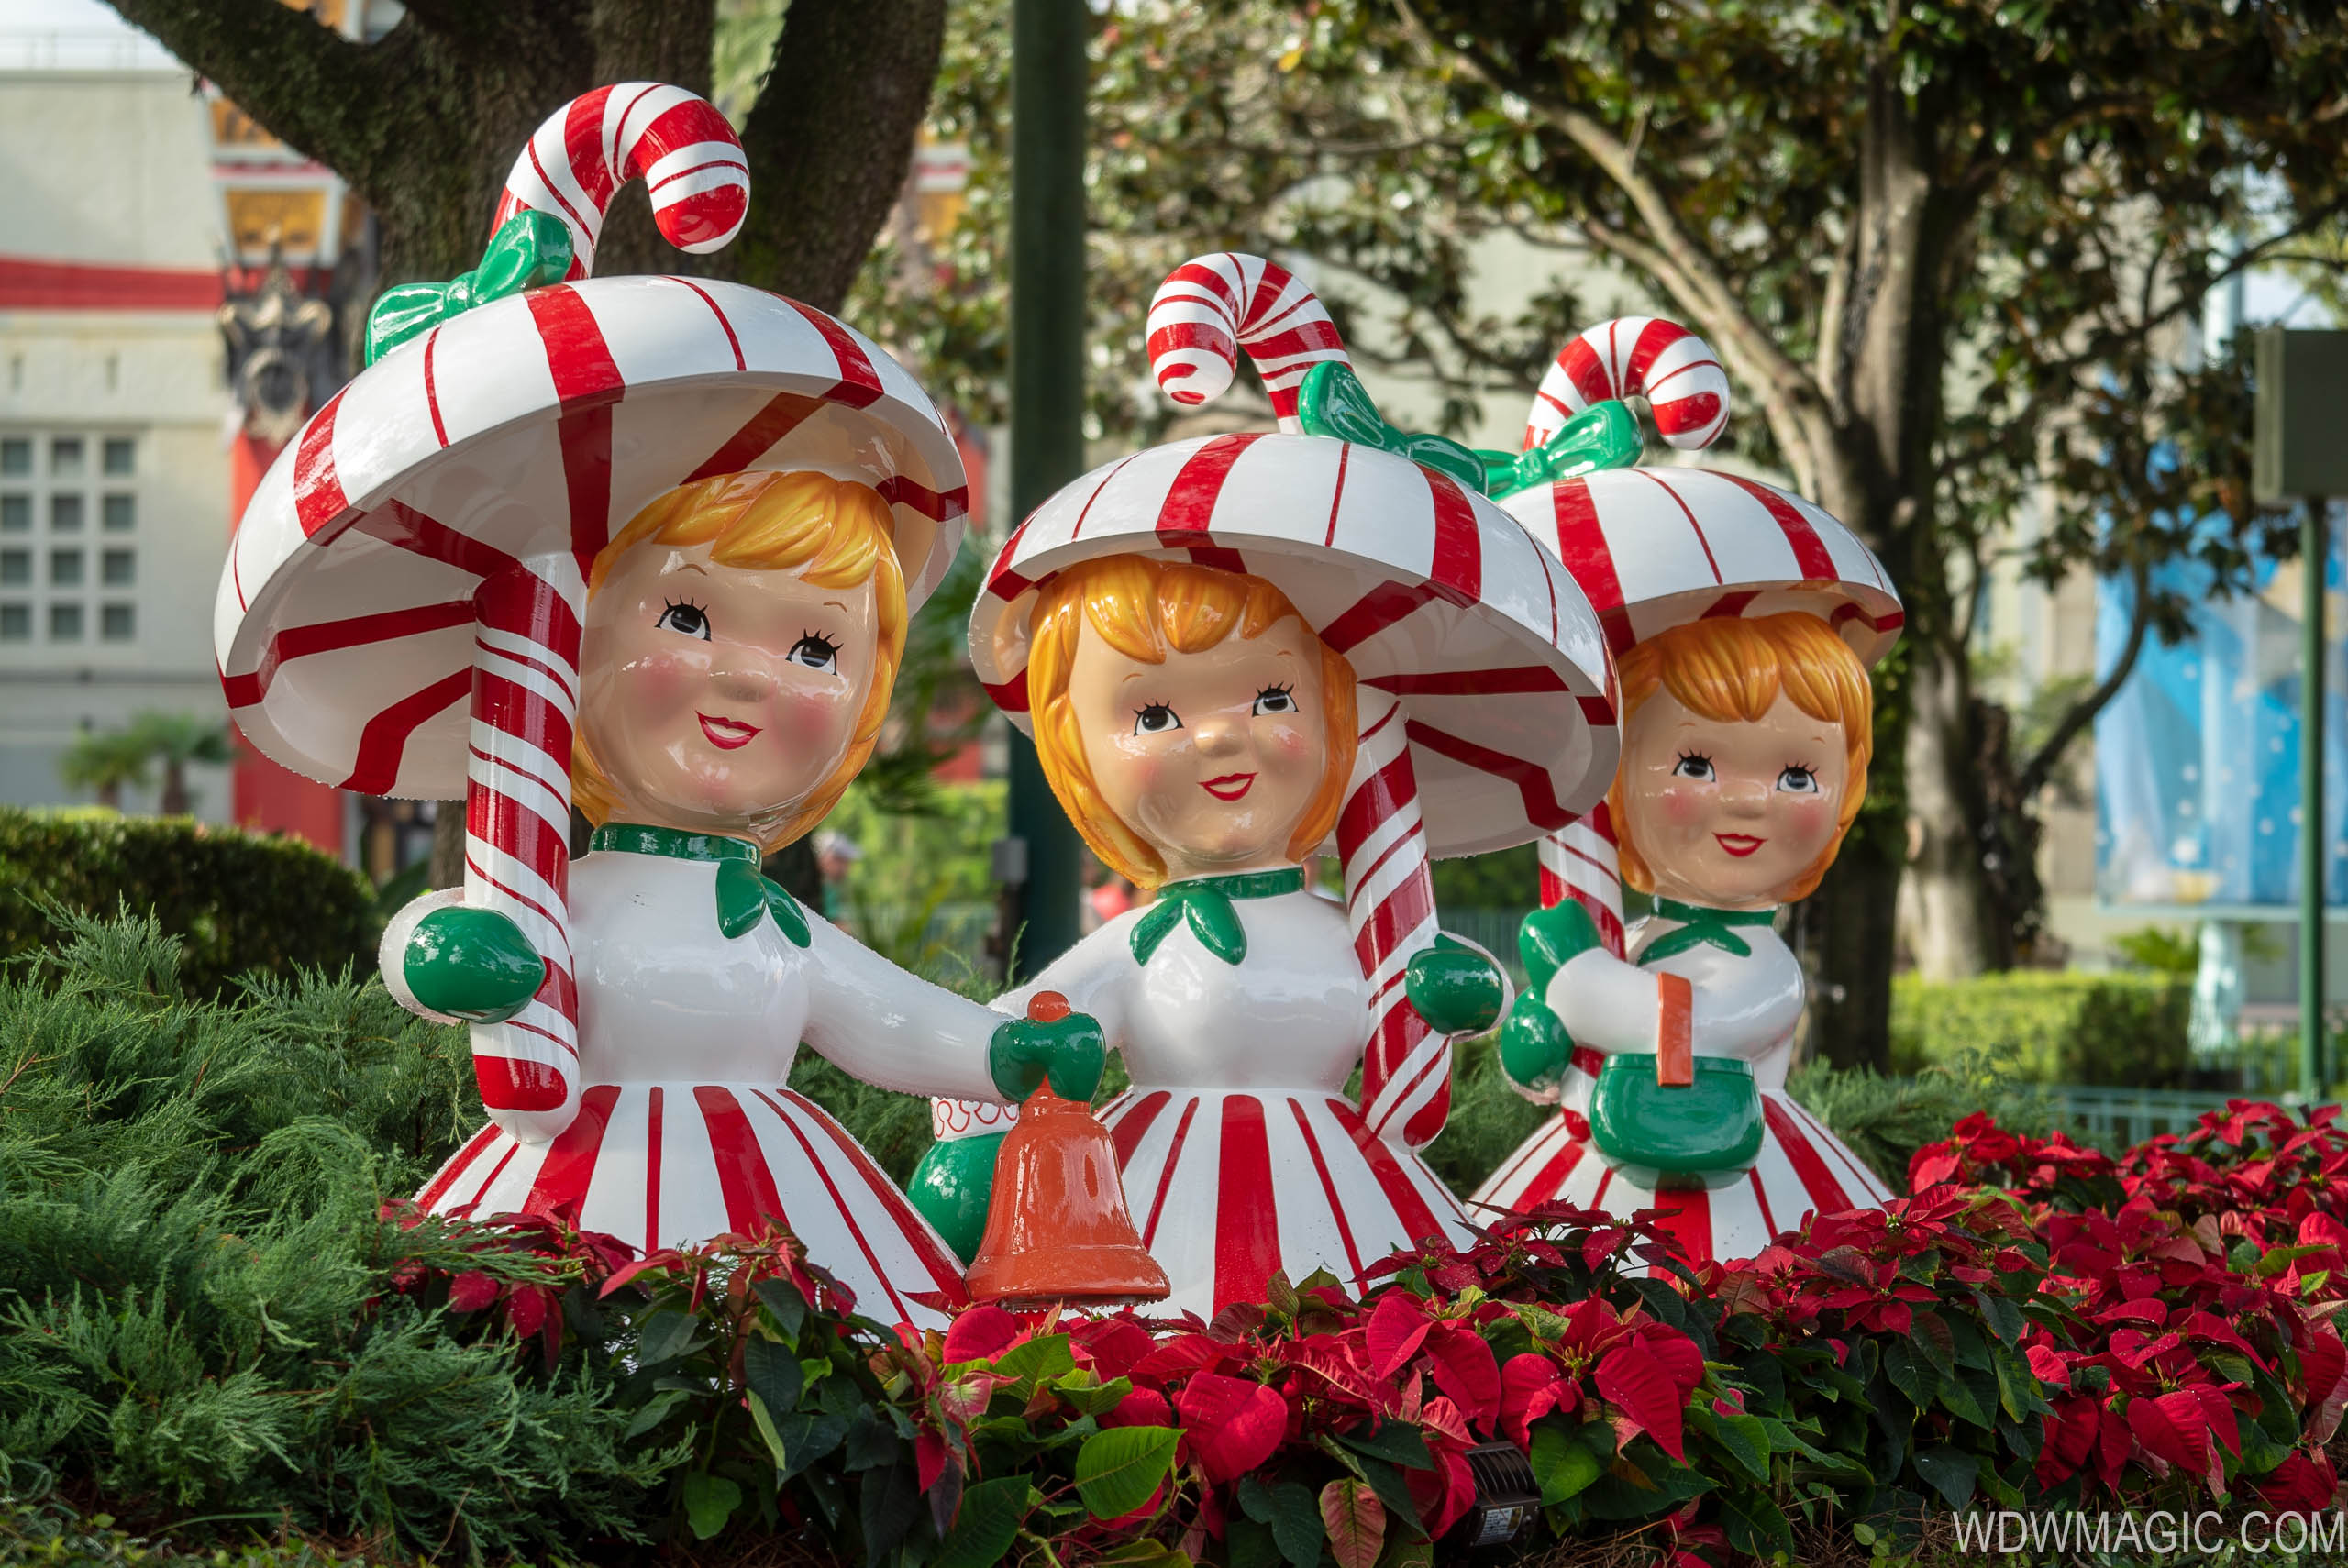 Vintage Christmas decor at Disney's Hollywood Studios